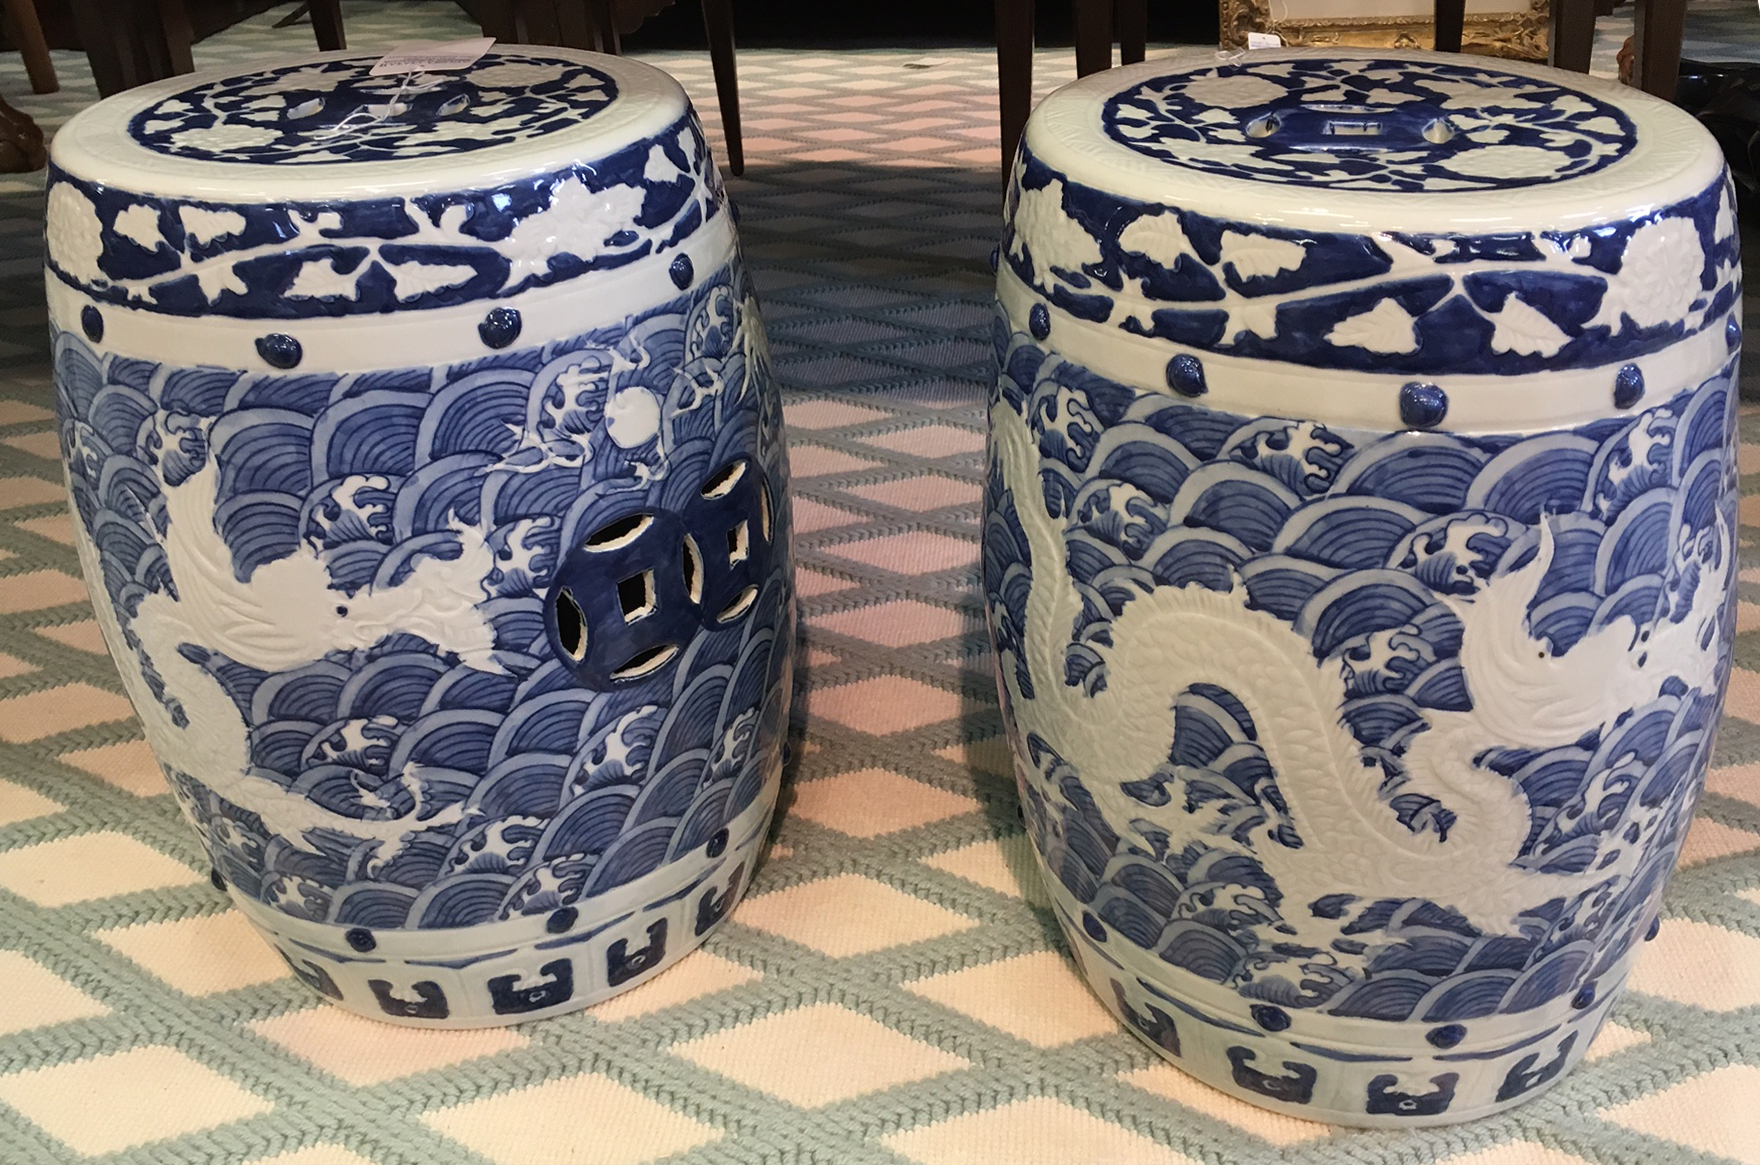 Dragon Garden Stools For 2020 Garden Stool – Blue And White Chinese Porcelain Garden (View 22 of 30)